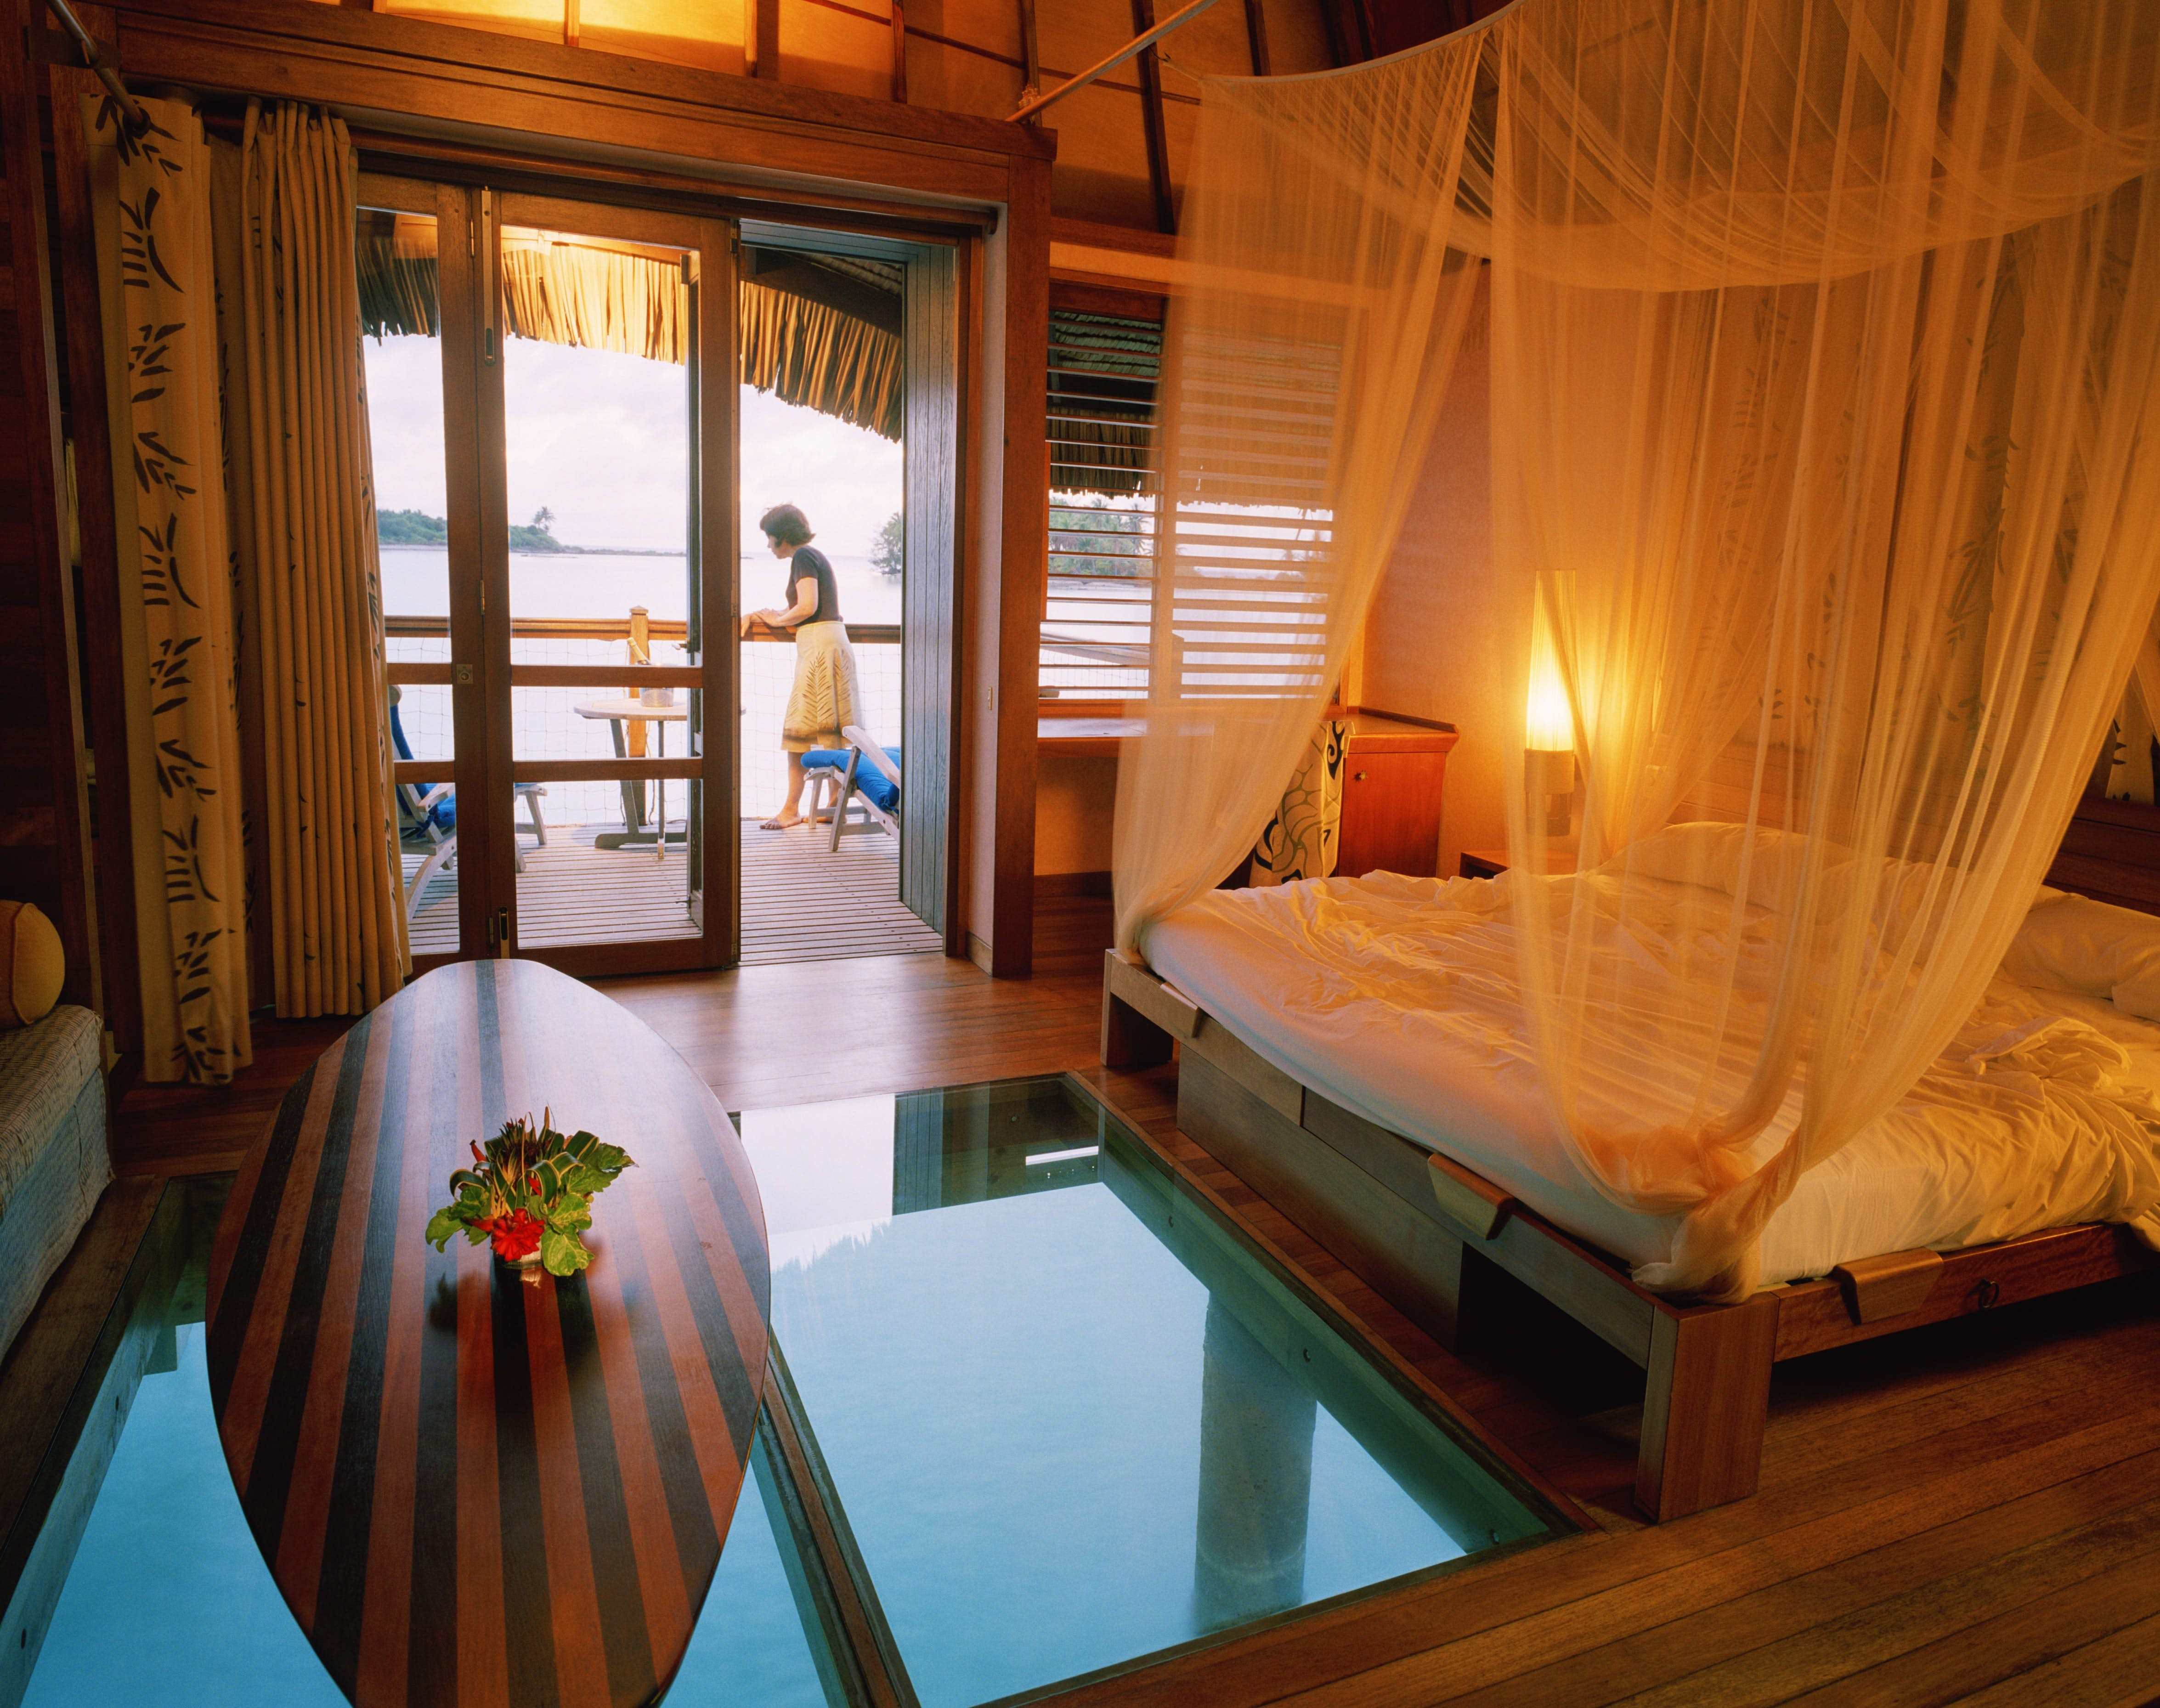 tropical decorations on bed tropical home decor ideas.htm room with a view 8 picture perfect hotels around the world  8 picture perfect hotels around the